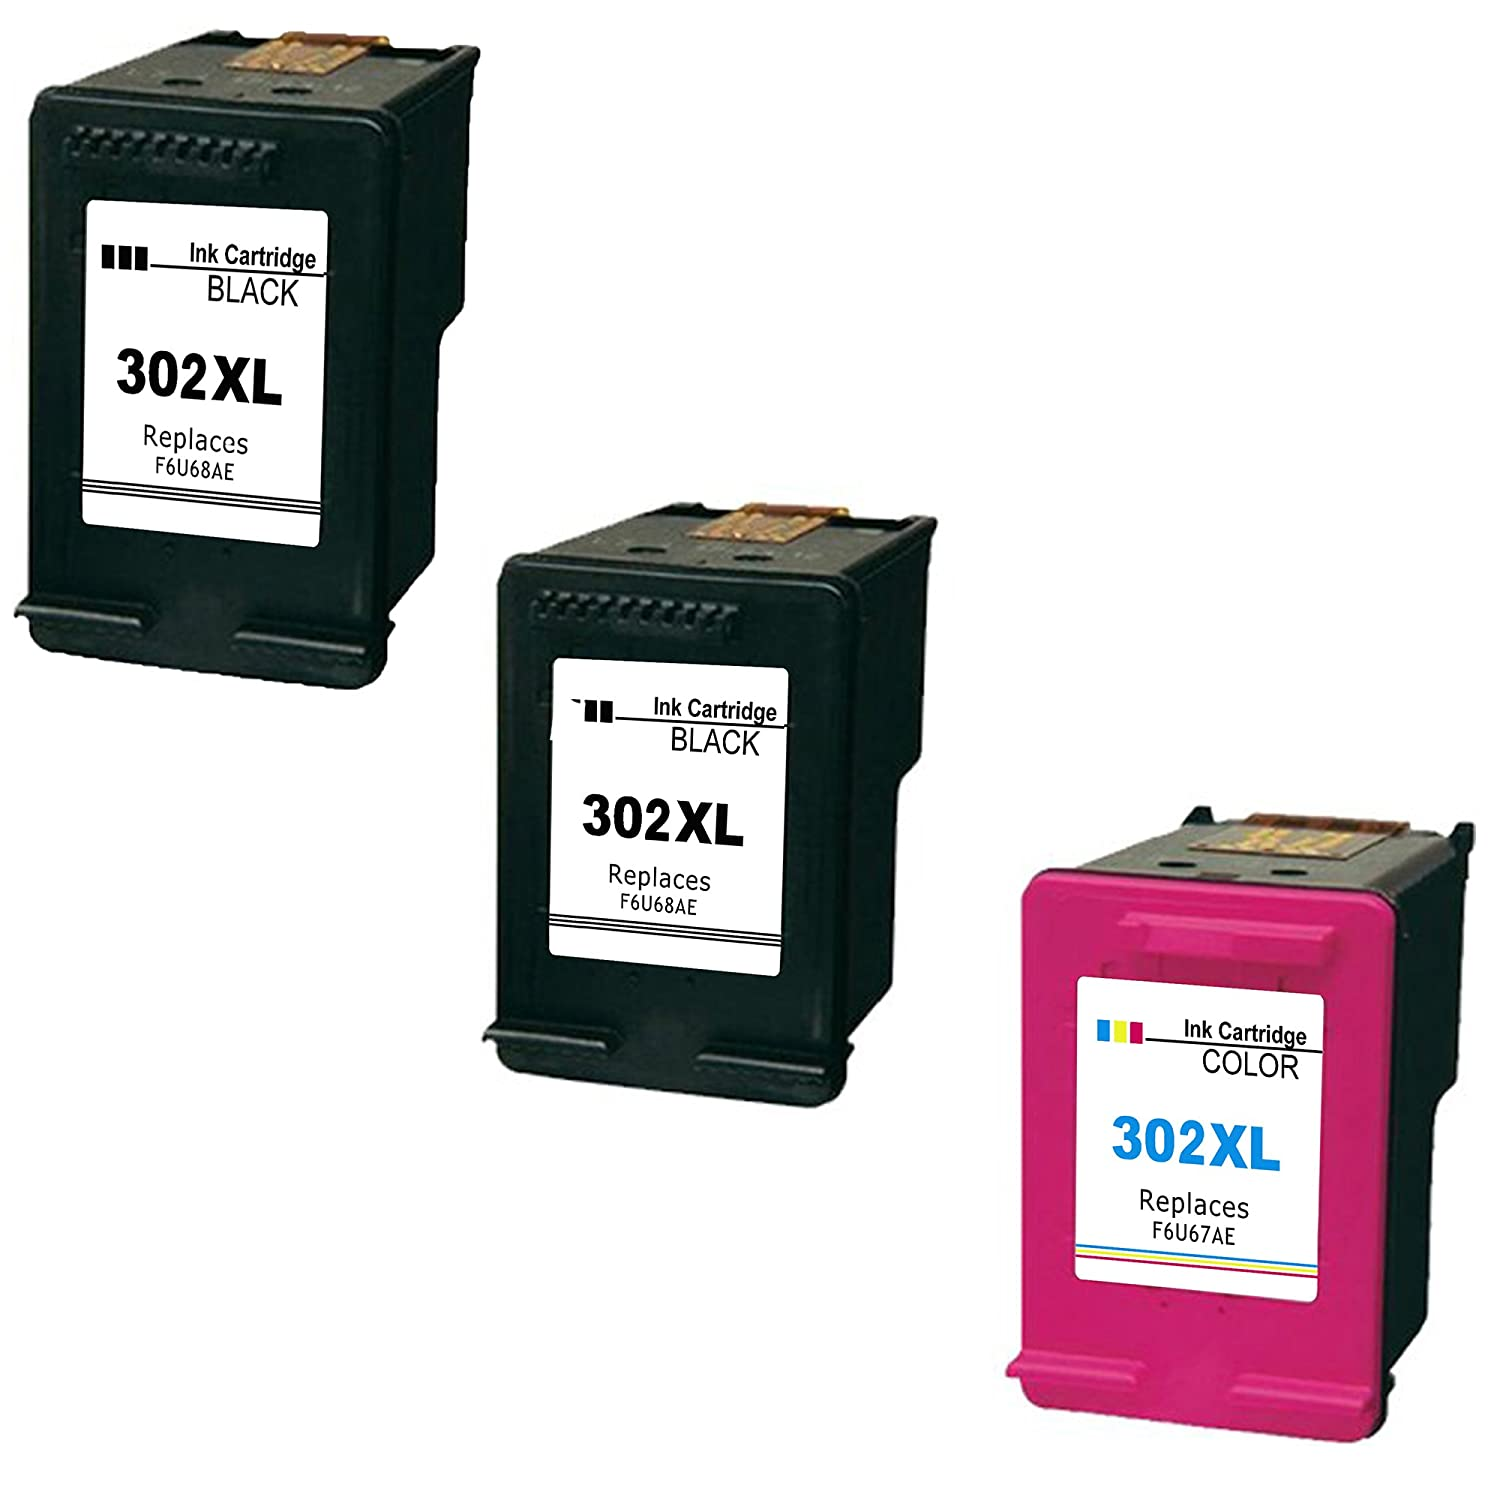 Daryo Cartridge HP 302XL Pack de 3 cartuchos de tinta para HP DeskJet 1110/2130/3630, tricolor y negro